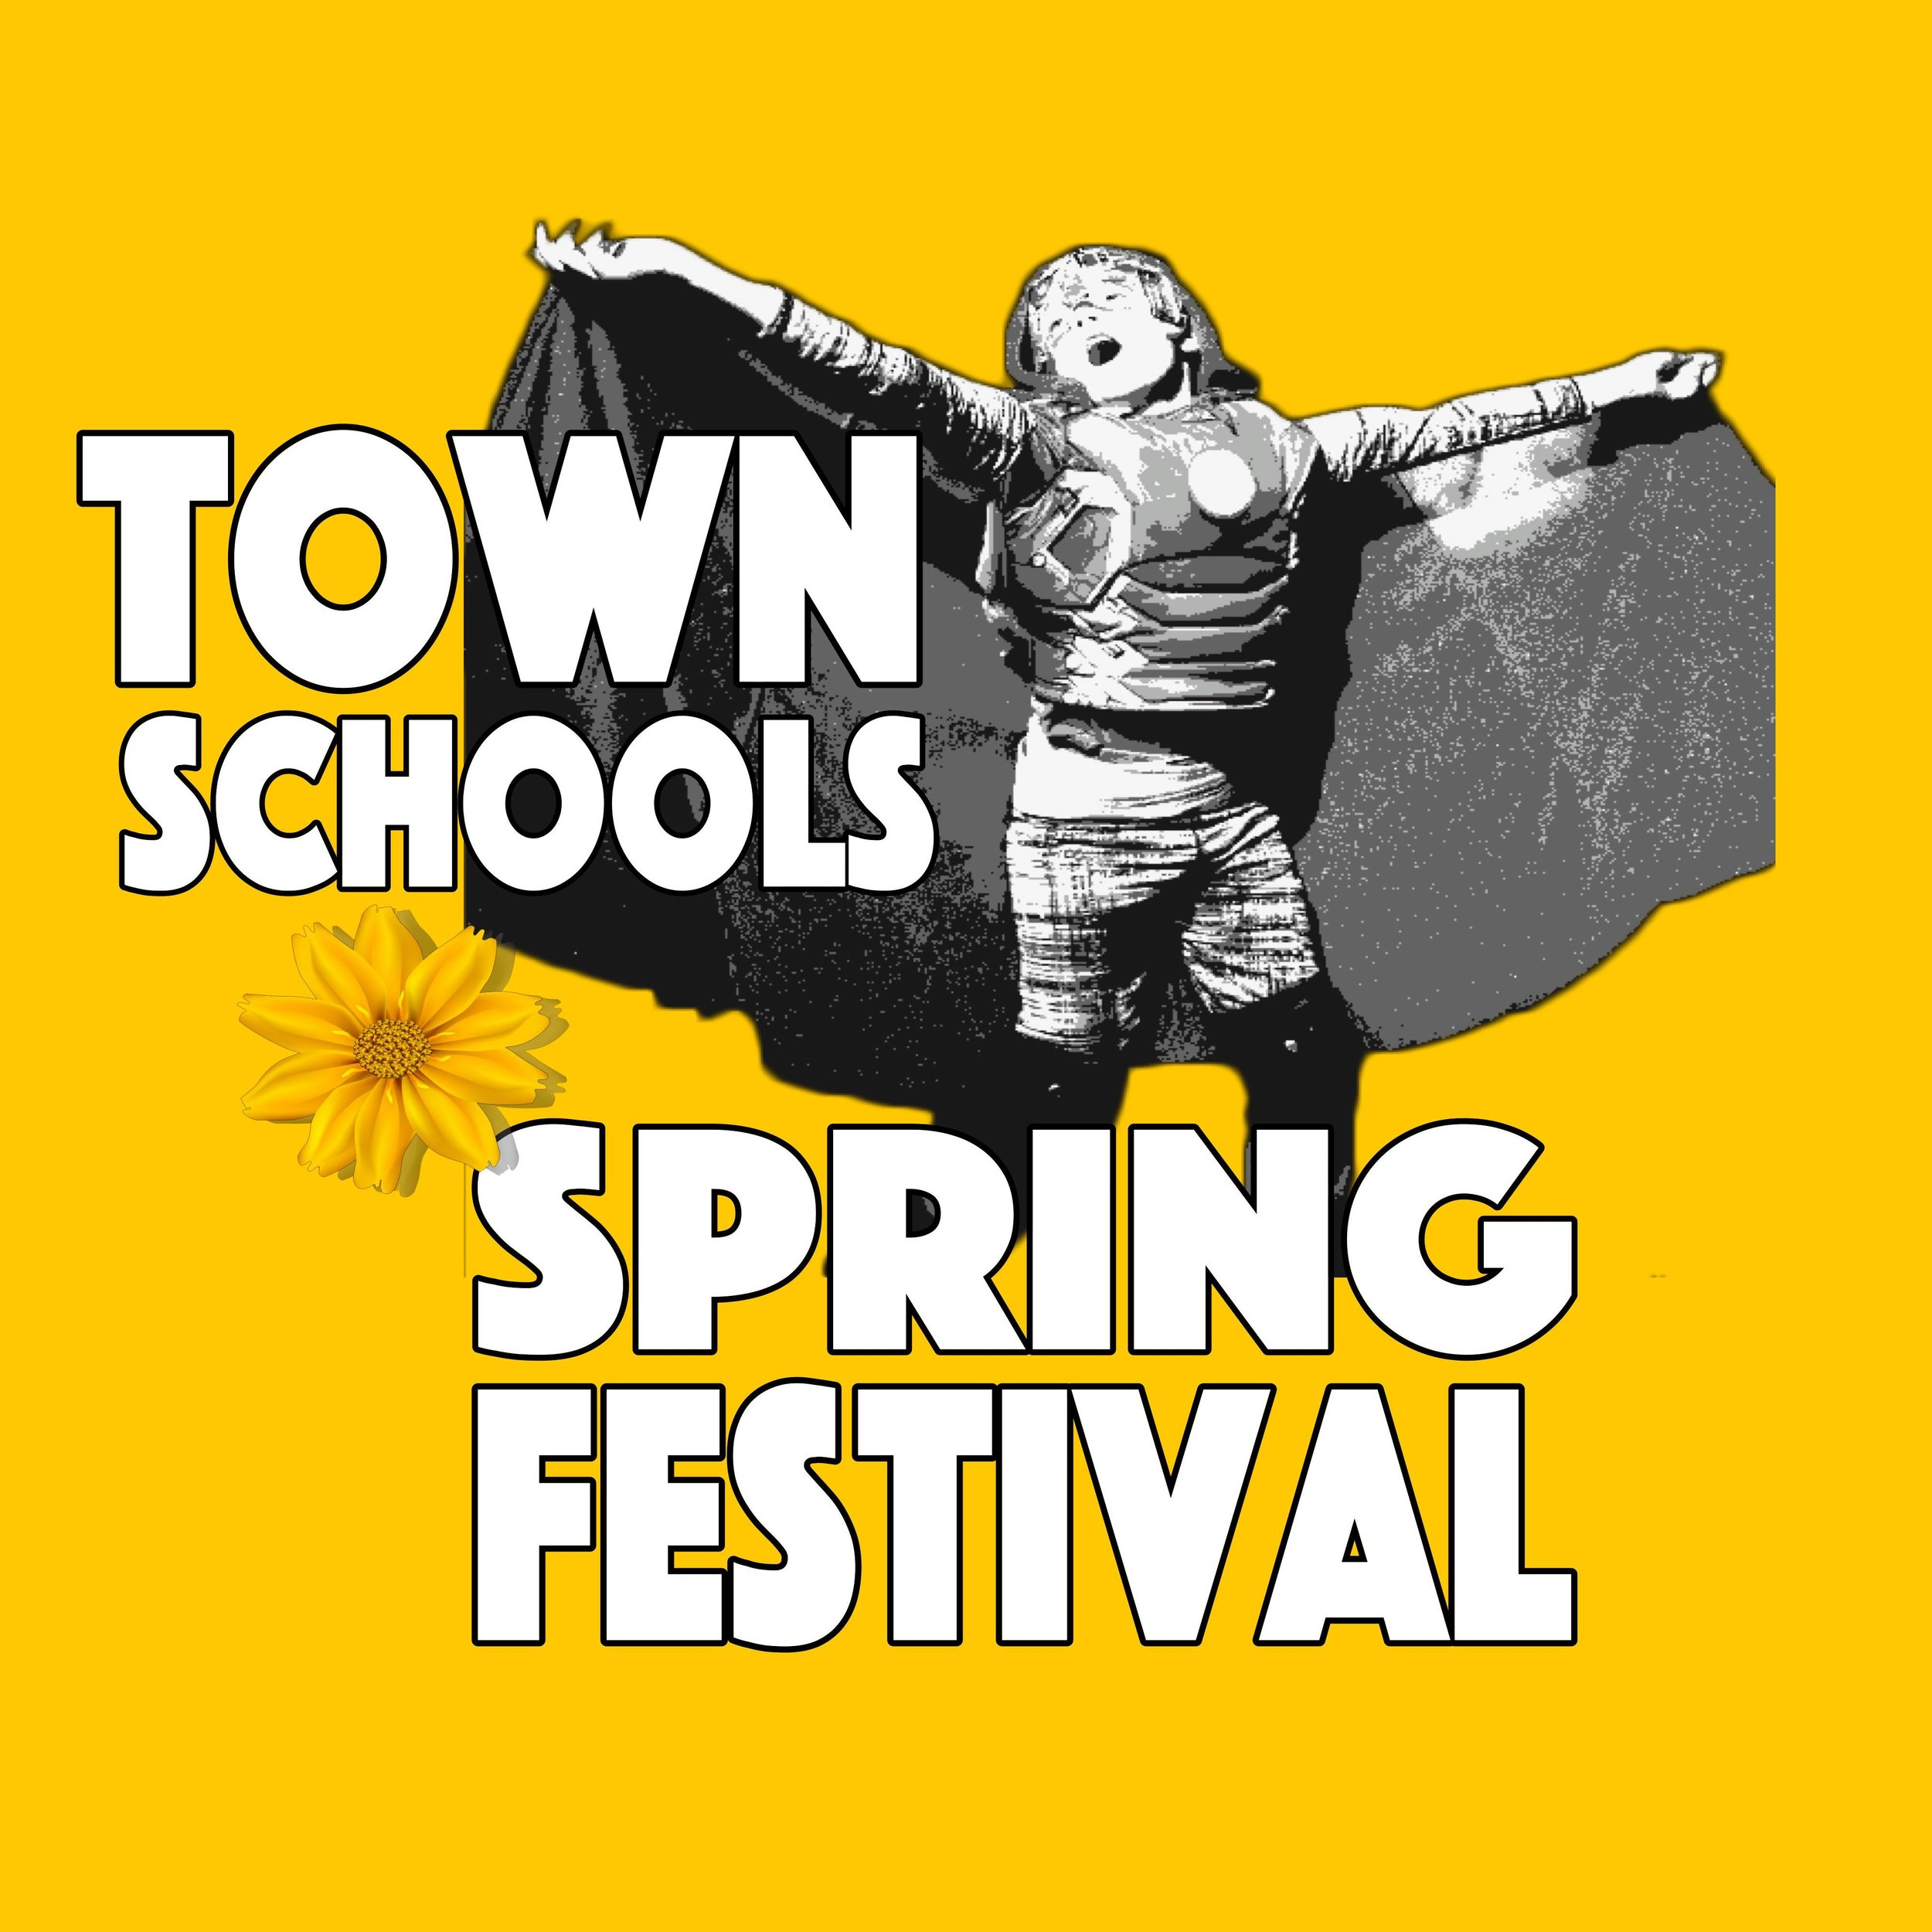 Town Schools Theatre Spring Fest! - Written & directed by Putnam SmithTown Schools Theatre Festival brings together three original 20 minute plays performed by local elementary school students.Performances: Friday, May 30th 7pm + Saturday, June 1st 7pmTickets: $8Sponsored by Sam's Outdoor Outfitters